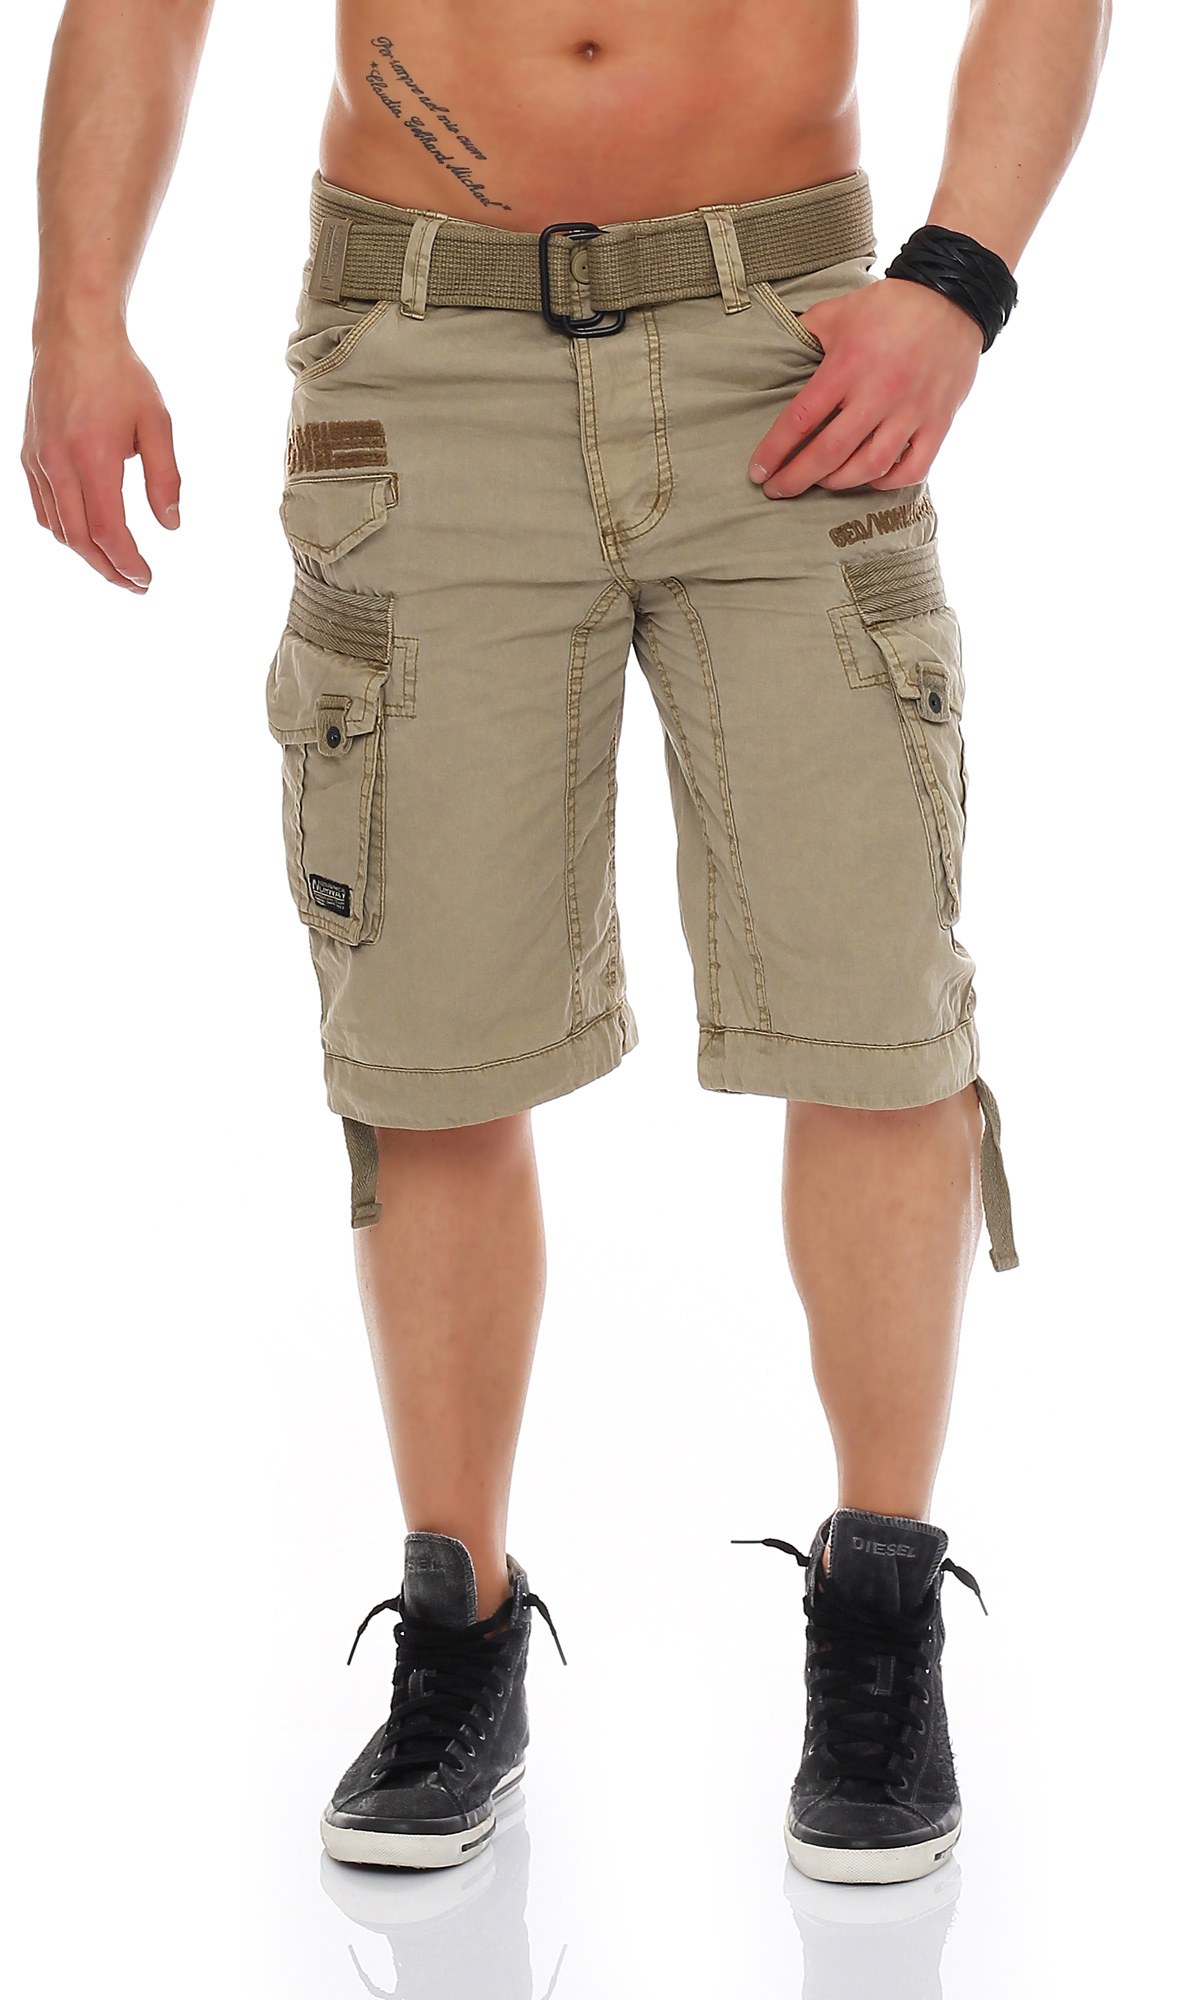 geographical norway herren bermuda cargo shorts short kurze sommer hose ebay. Black Bedroom Furniture Sets. Home Design Ideas